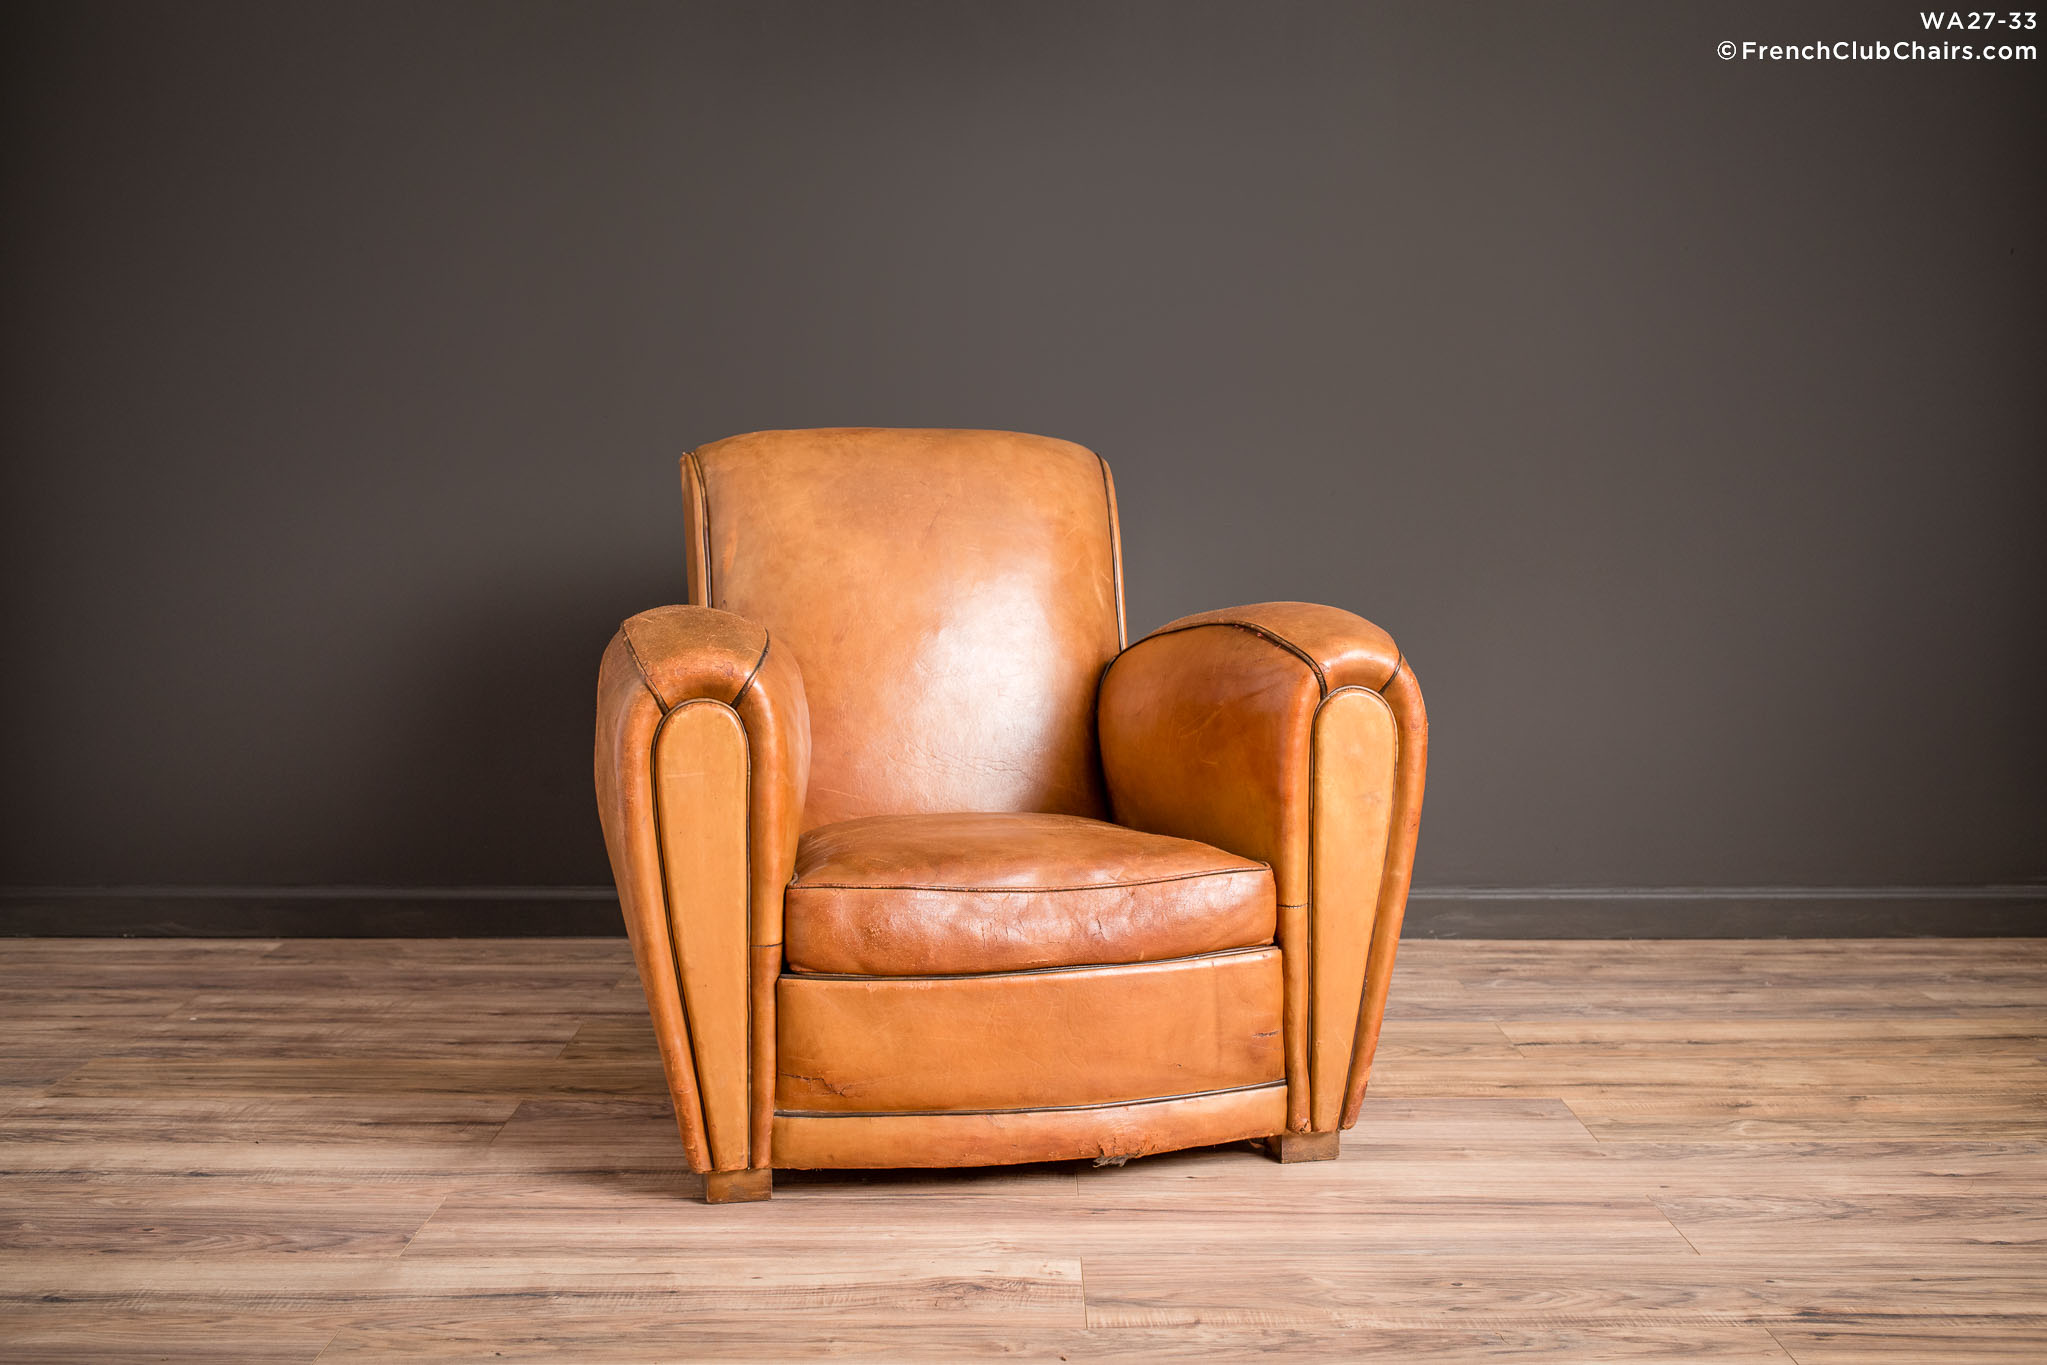 WA_27-33_Slope_Saintes_Solo_R_1TQ-v01-williams-antiks-leather-french-club-chair-wa_fcccom